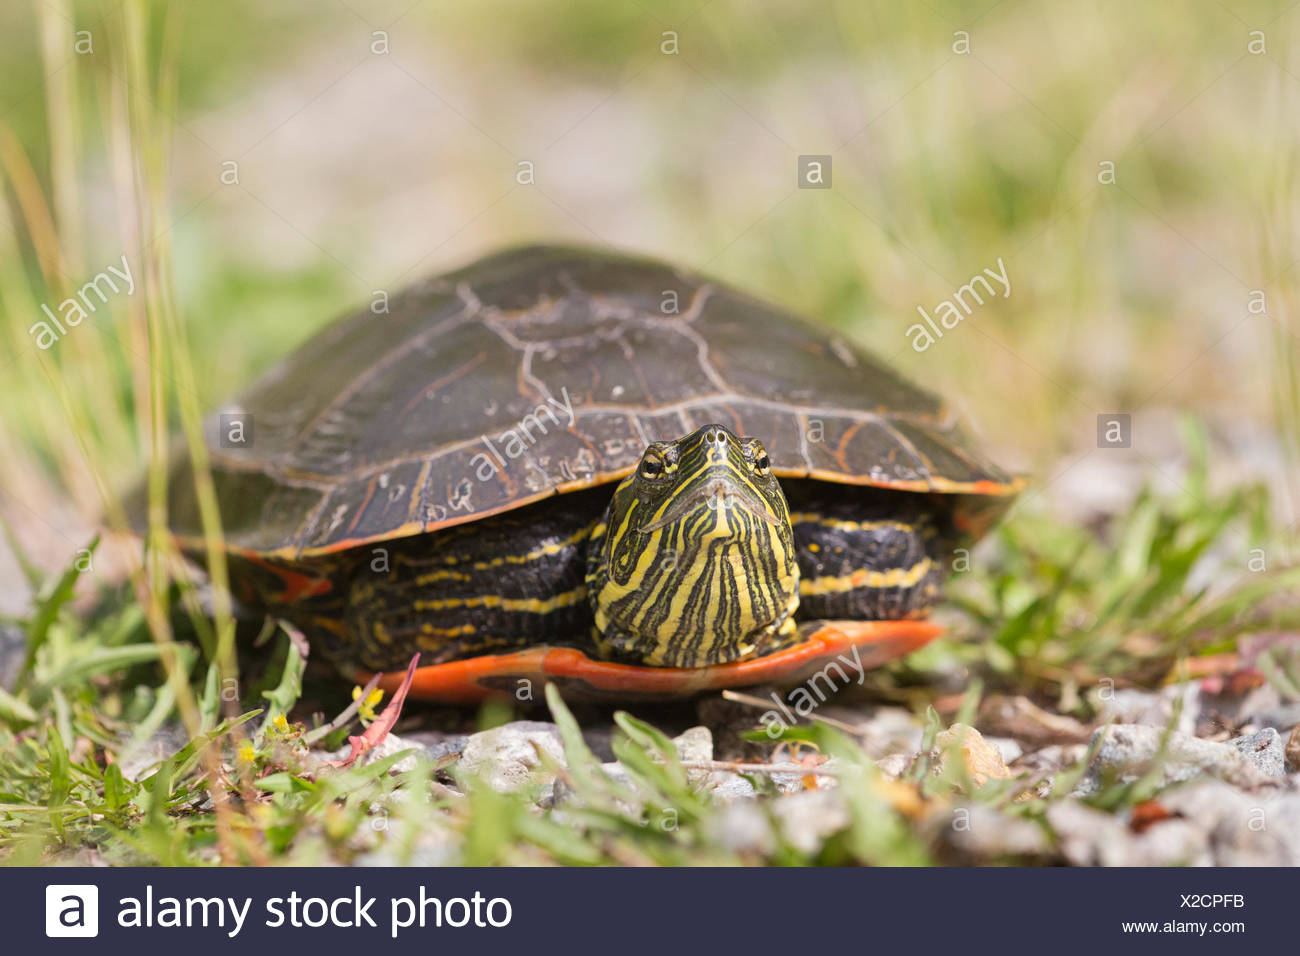 Western painted turtle (Chrysemys picta bellii), female, Nicomen Slough, Agassiz, British Columbia, Canada.  The Pacific Coast population of this species is endangered in Canada. - Stock Image